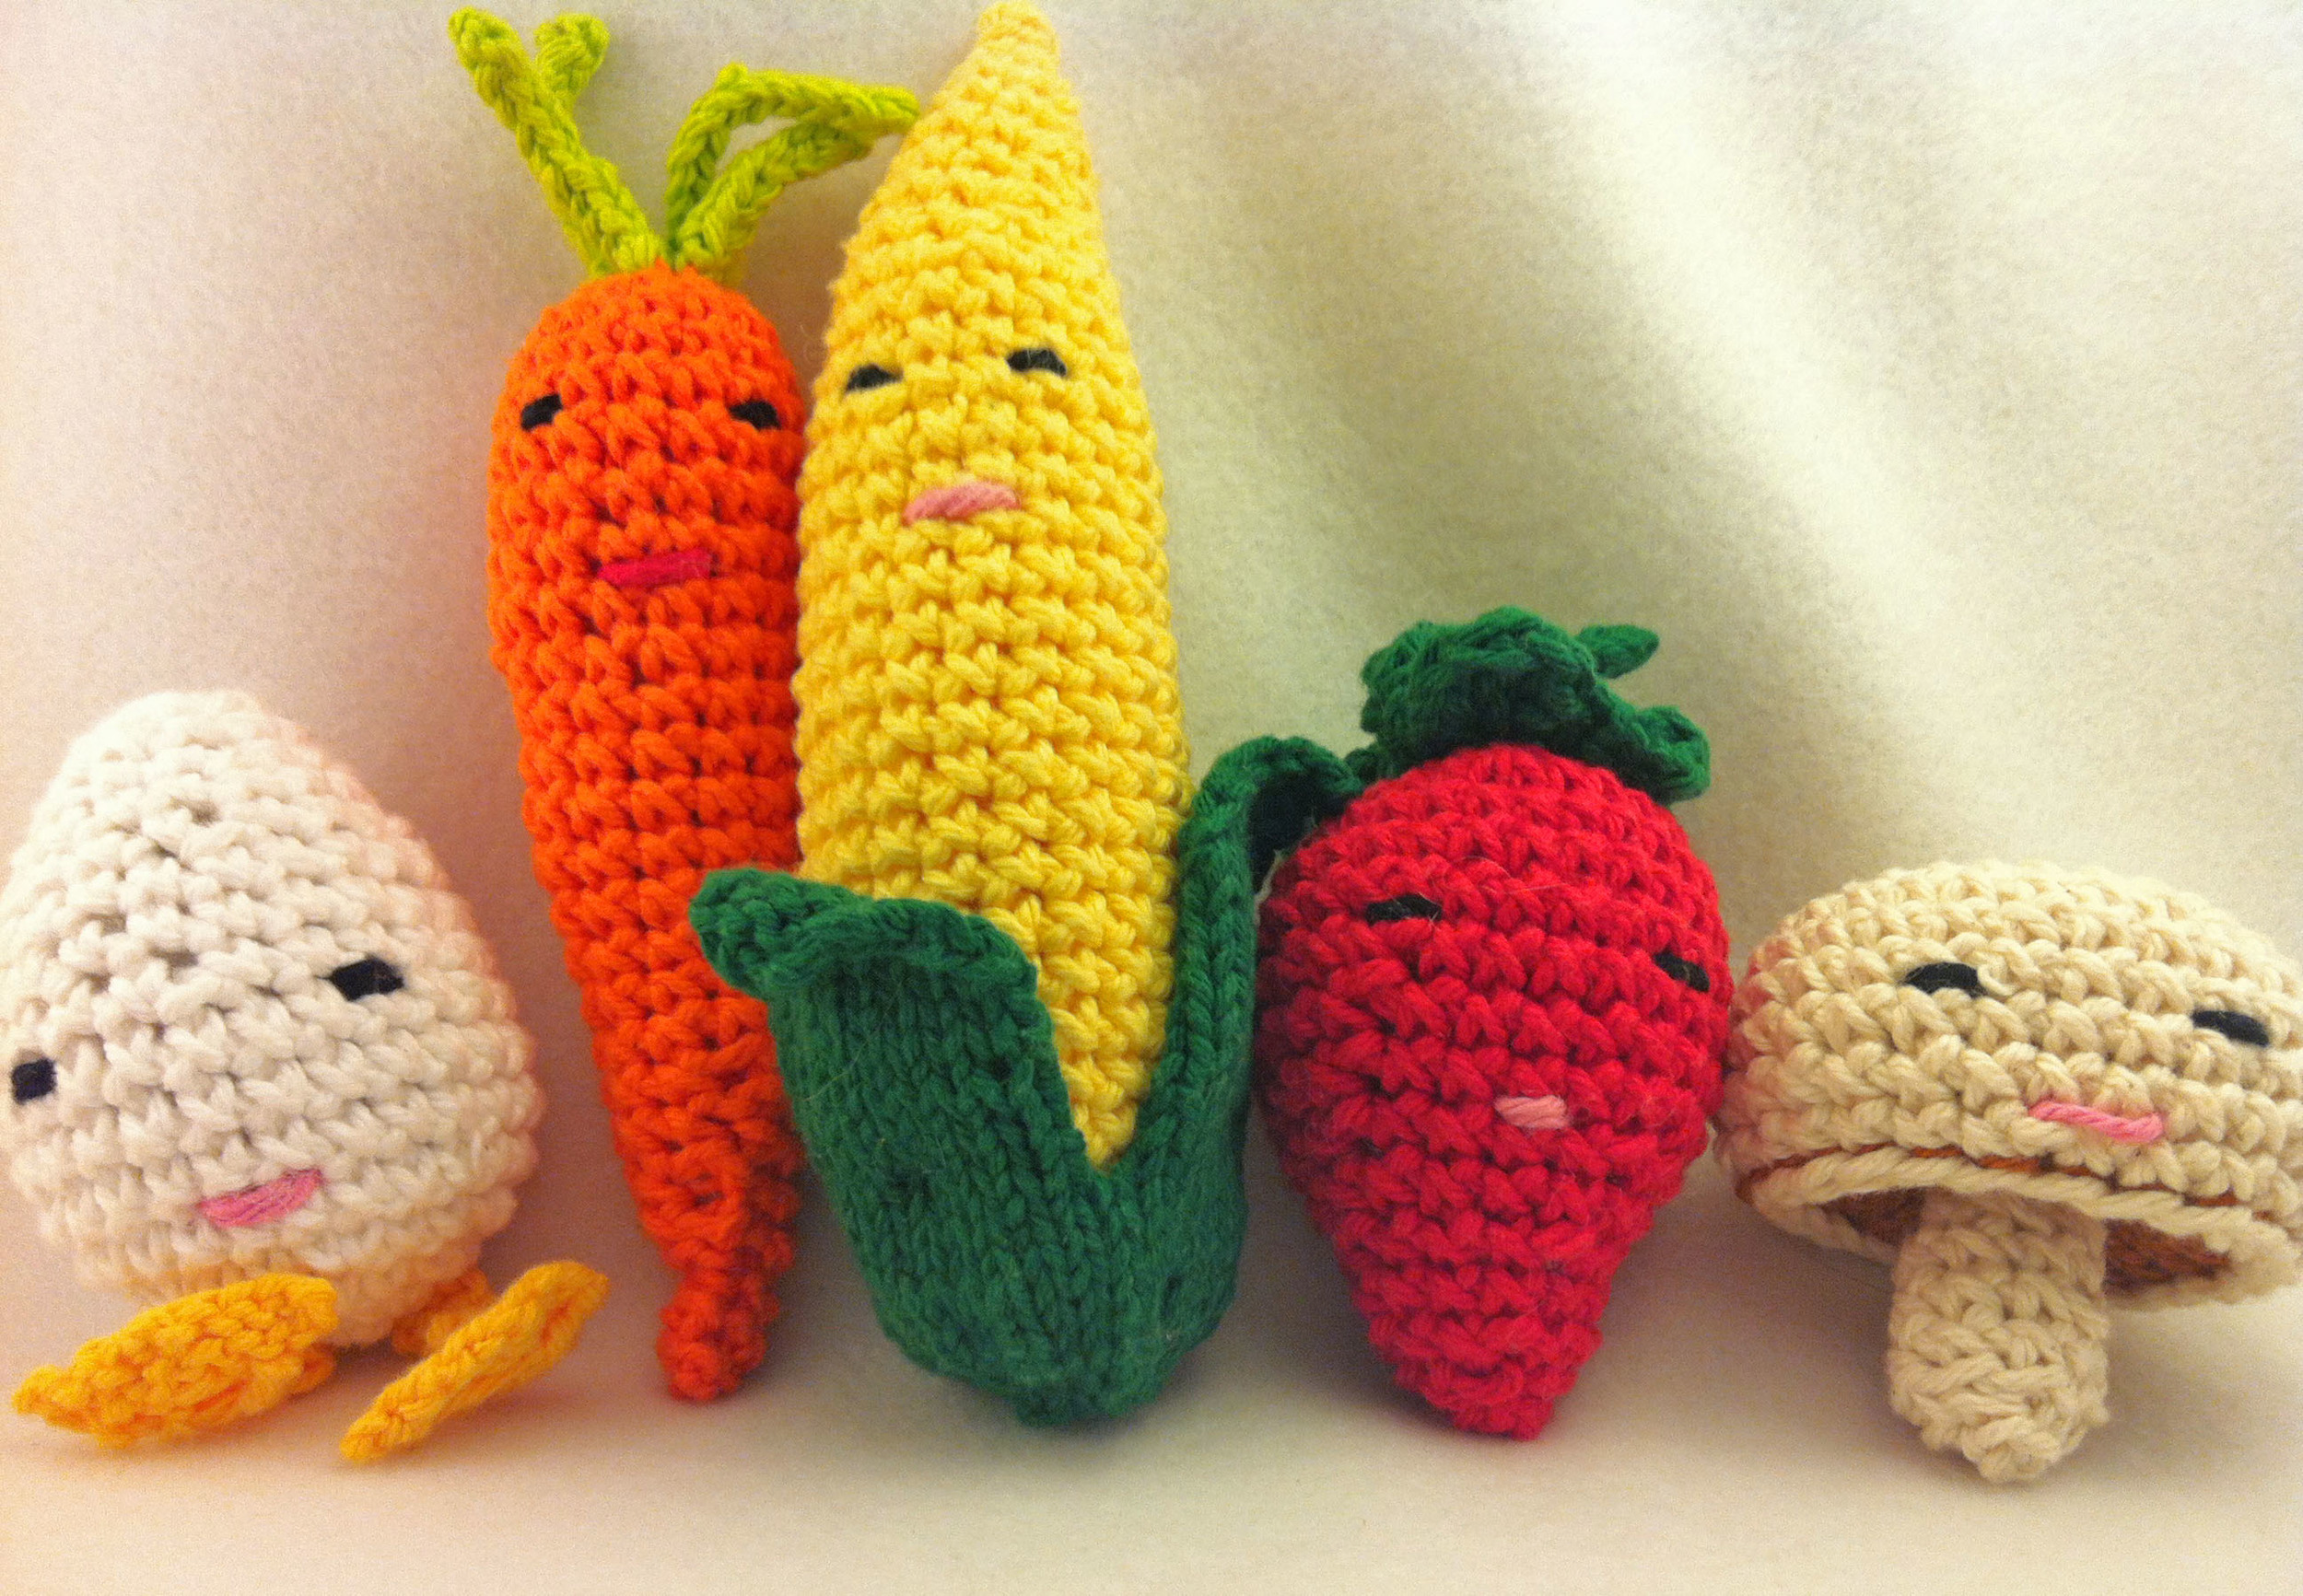 MoreProjects_CrochetVeggies.jpg